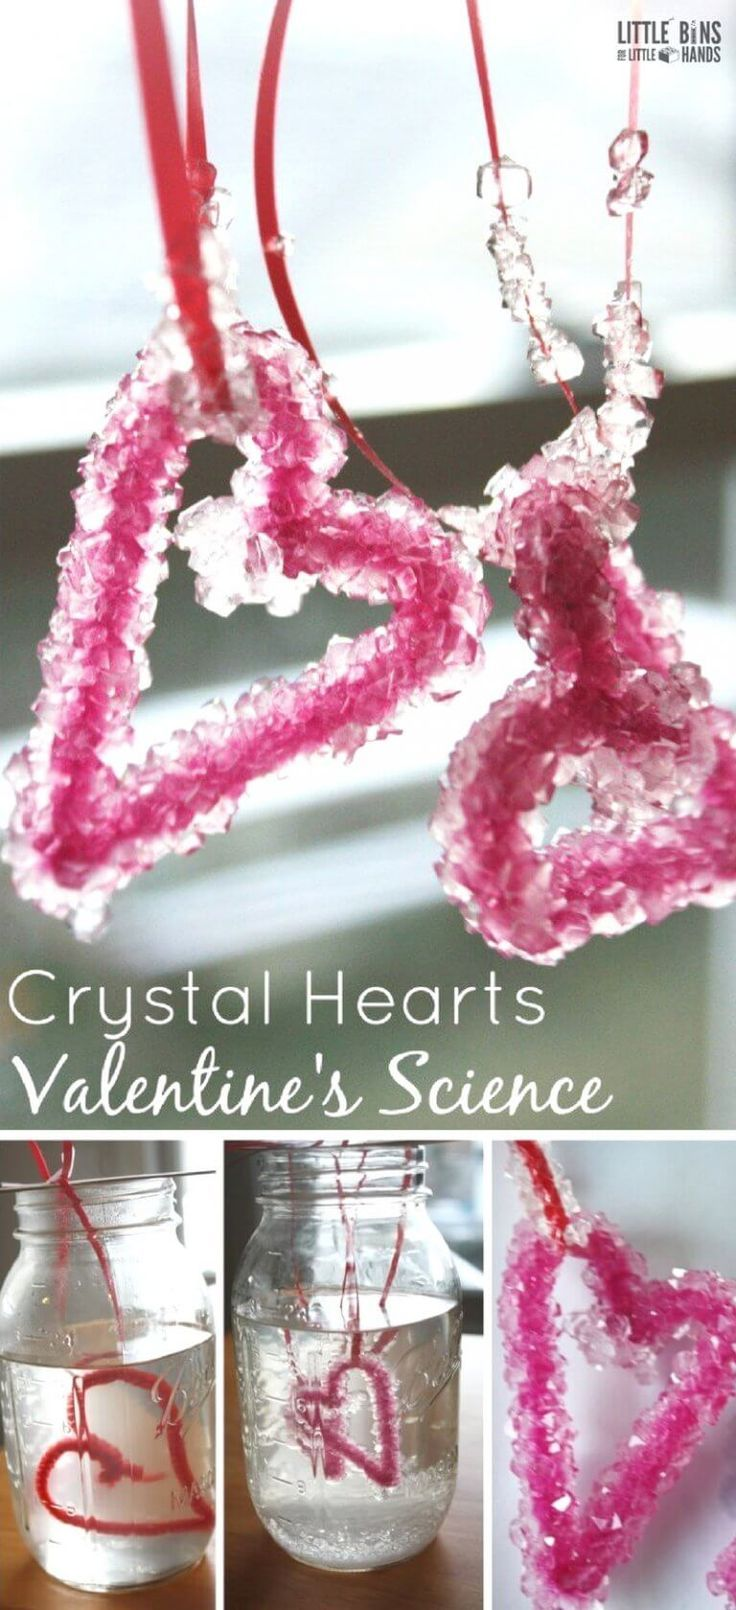 Growing crystals is actually pretty easy to do at home and makes a great science... 2